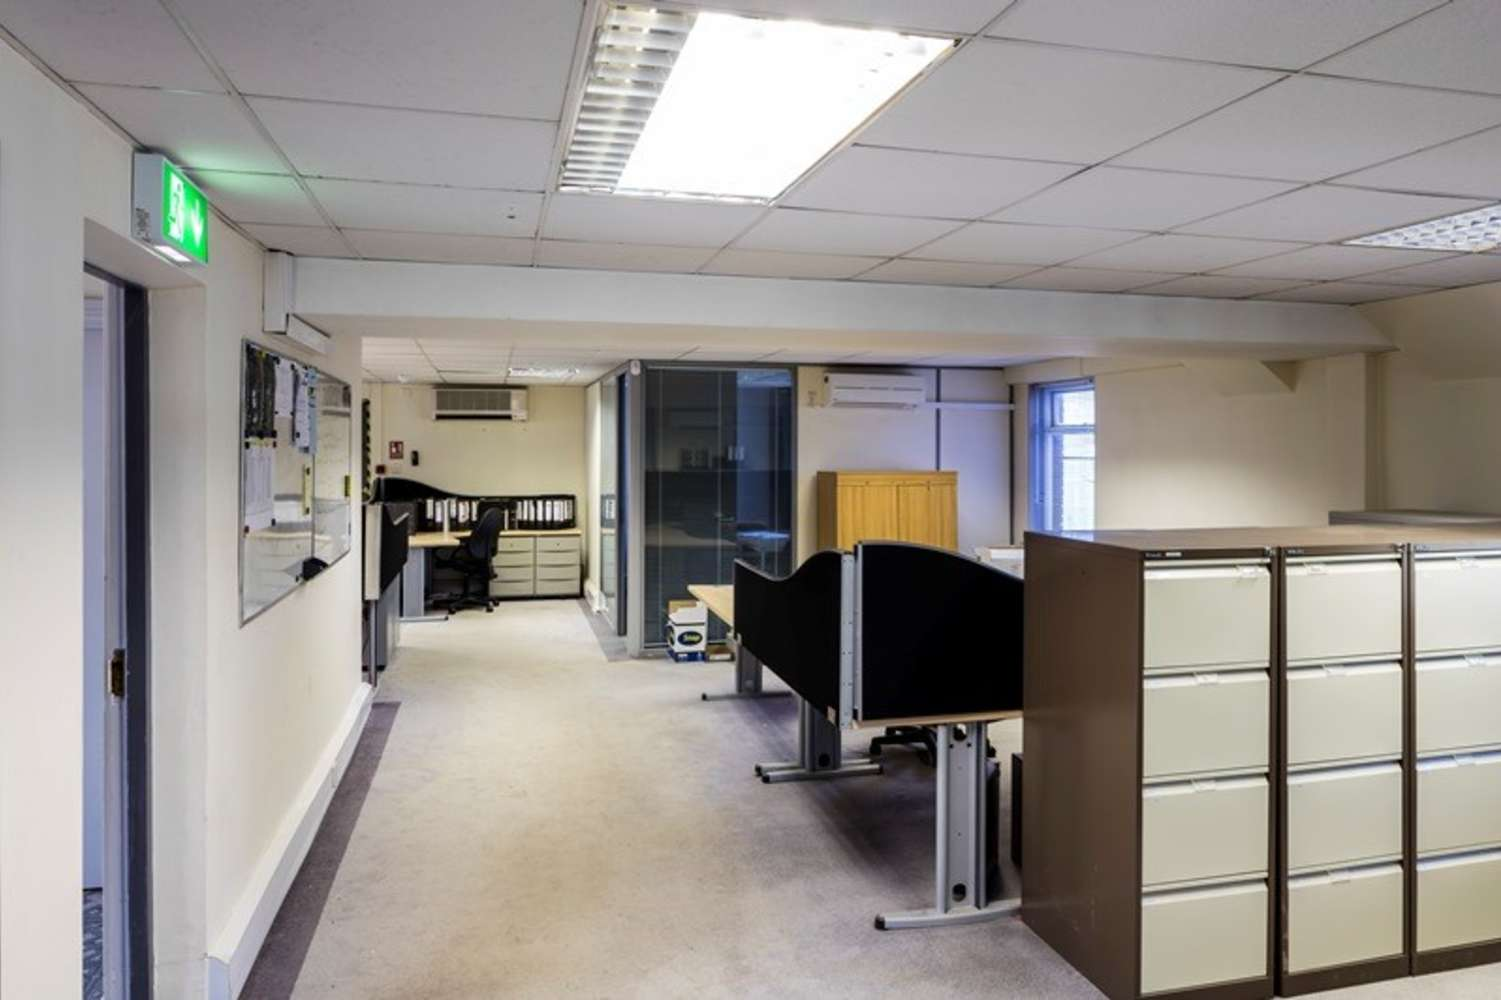 Industrial Co wicklow, A98 VR72 - Detached Two Storey Office, Boghall Road - 8924108